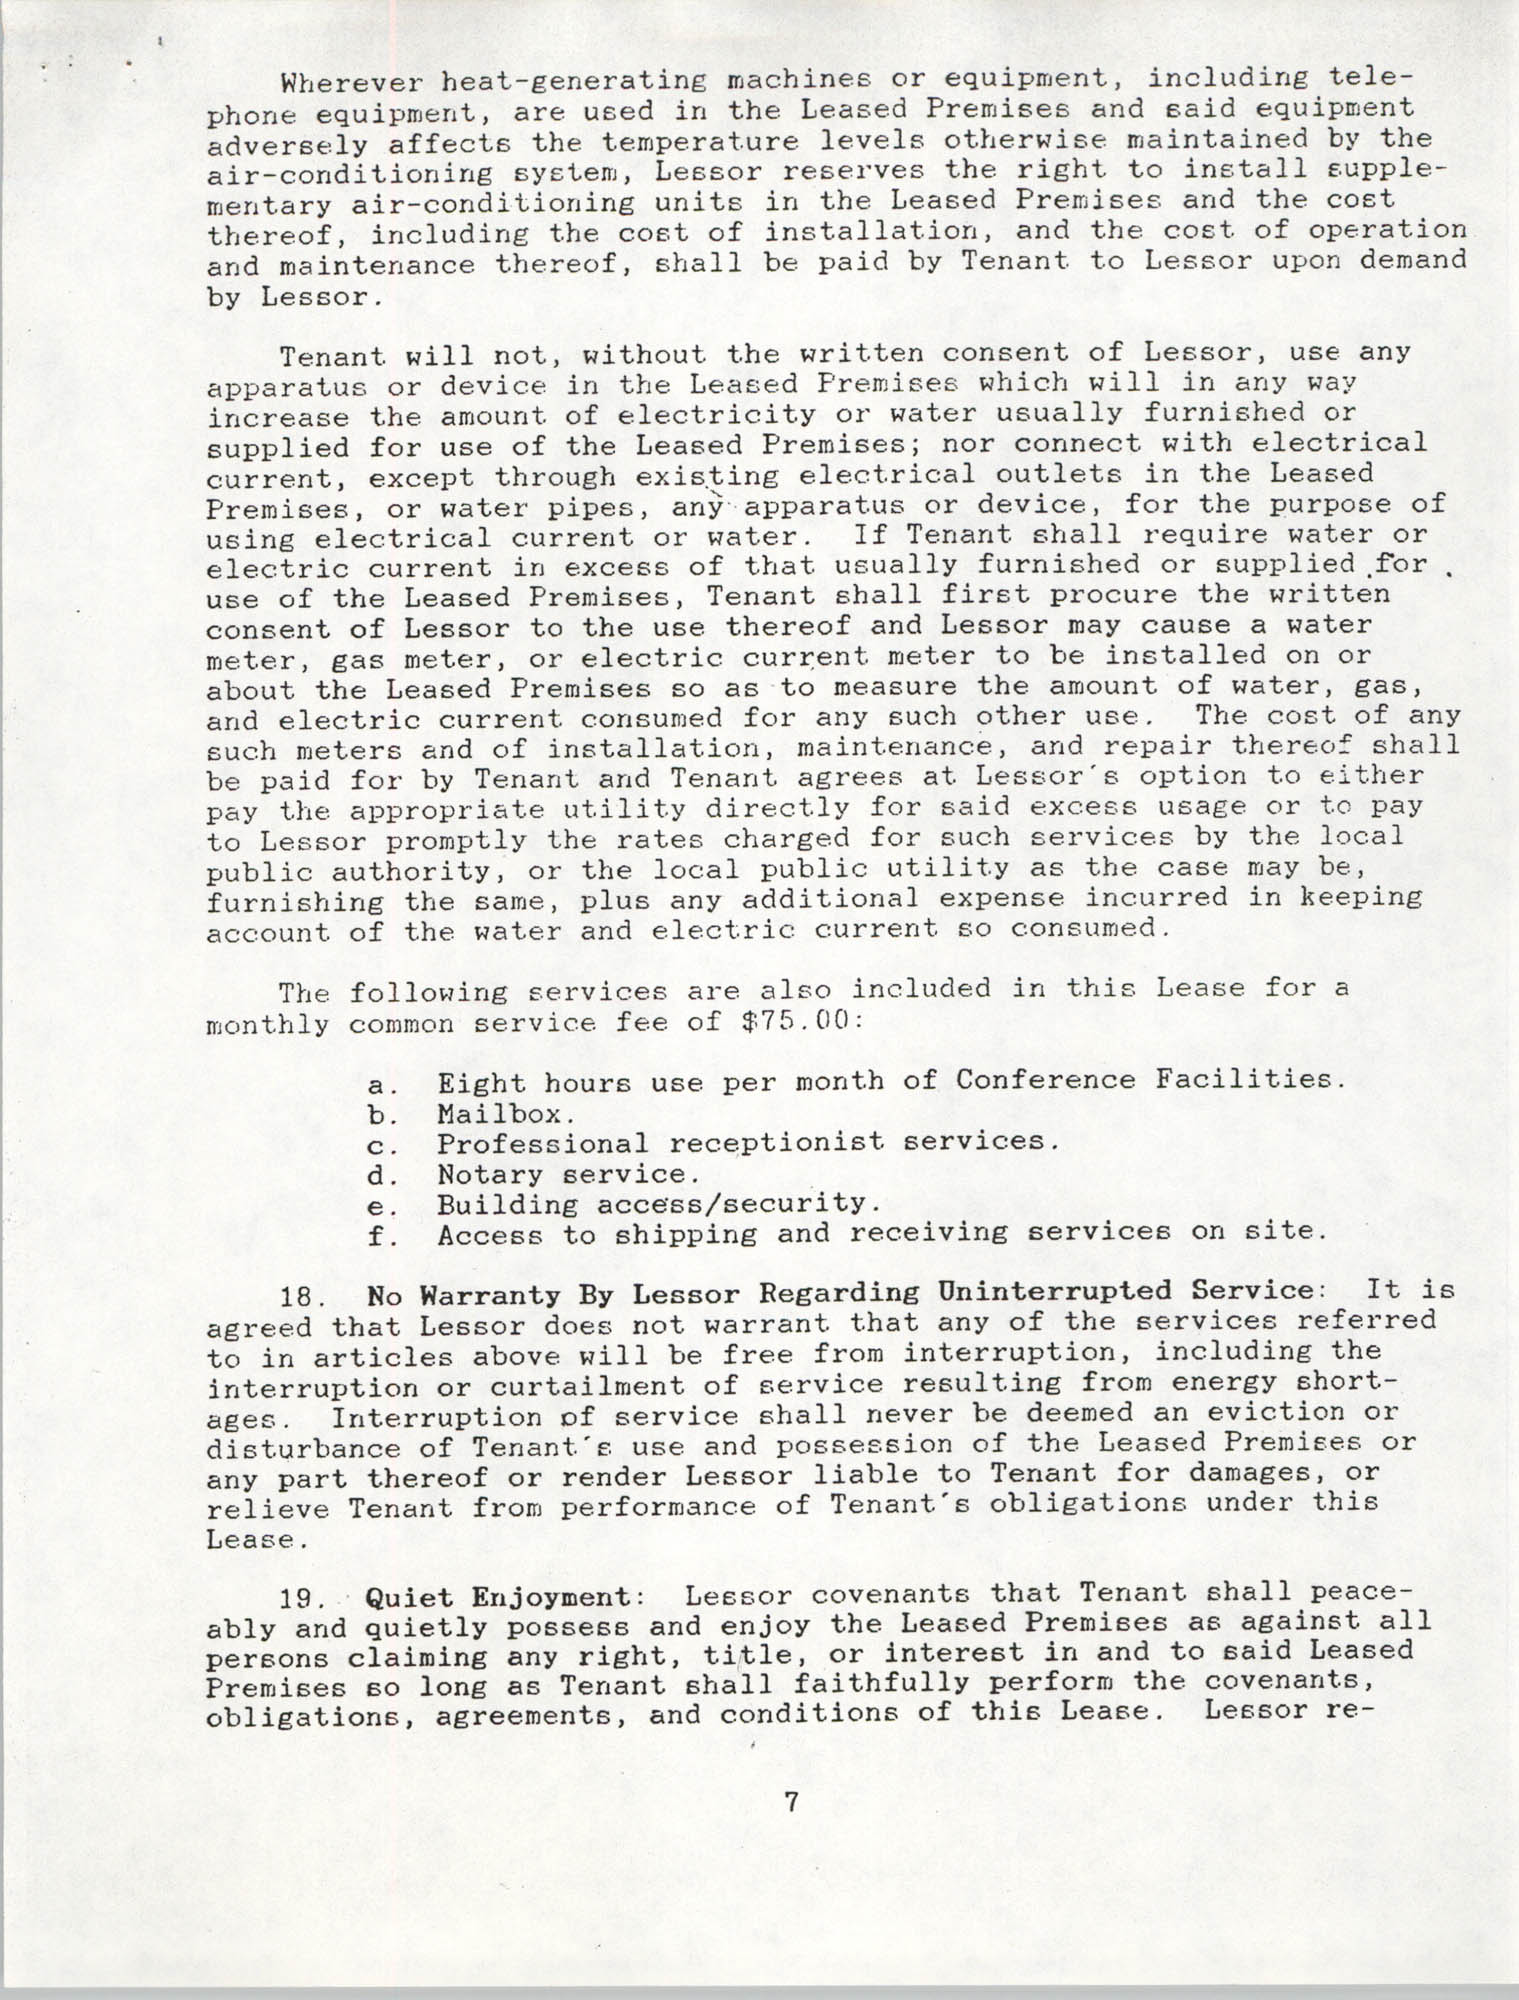 Charleston Branch of the NAACP Leasing Agreement, June 1991 to June 1994, Page 7